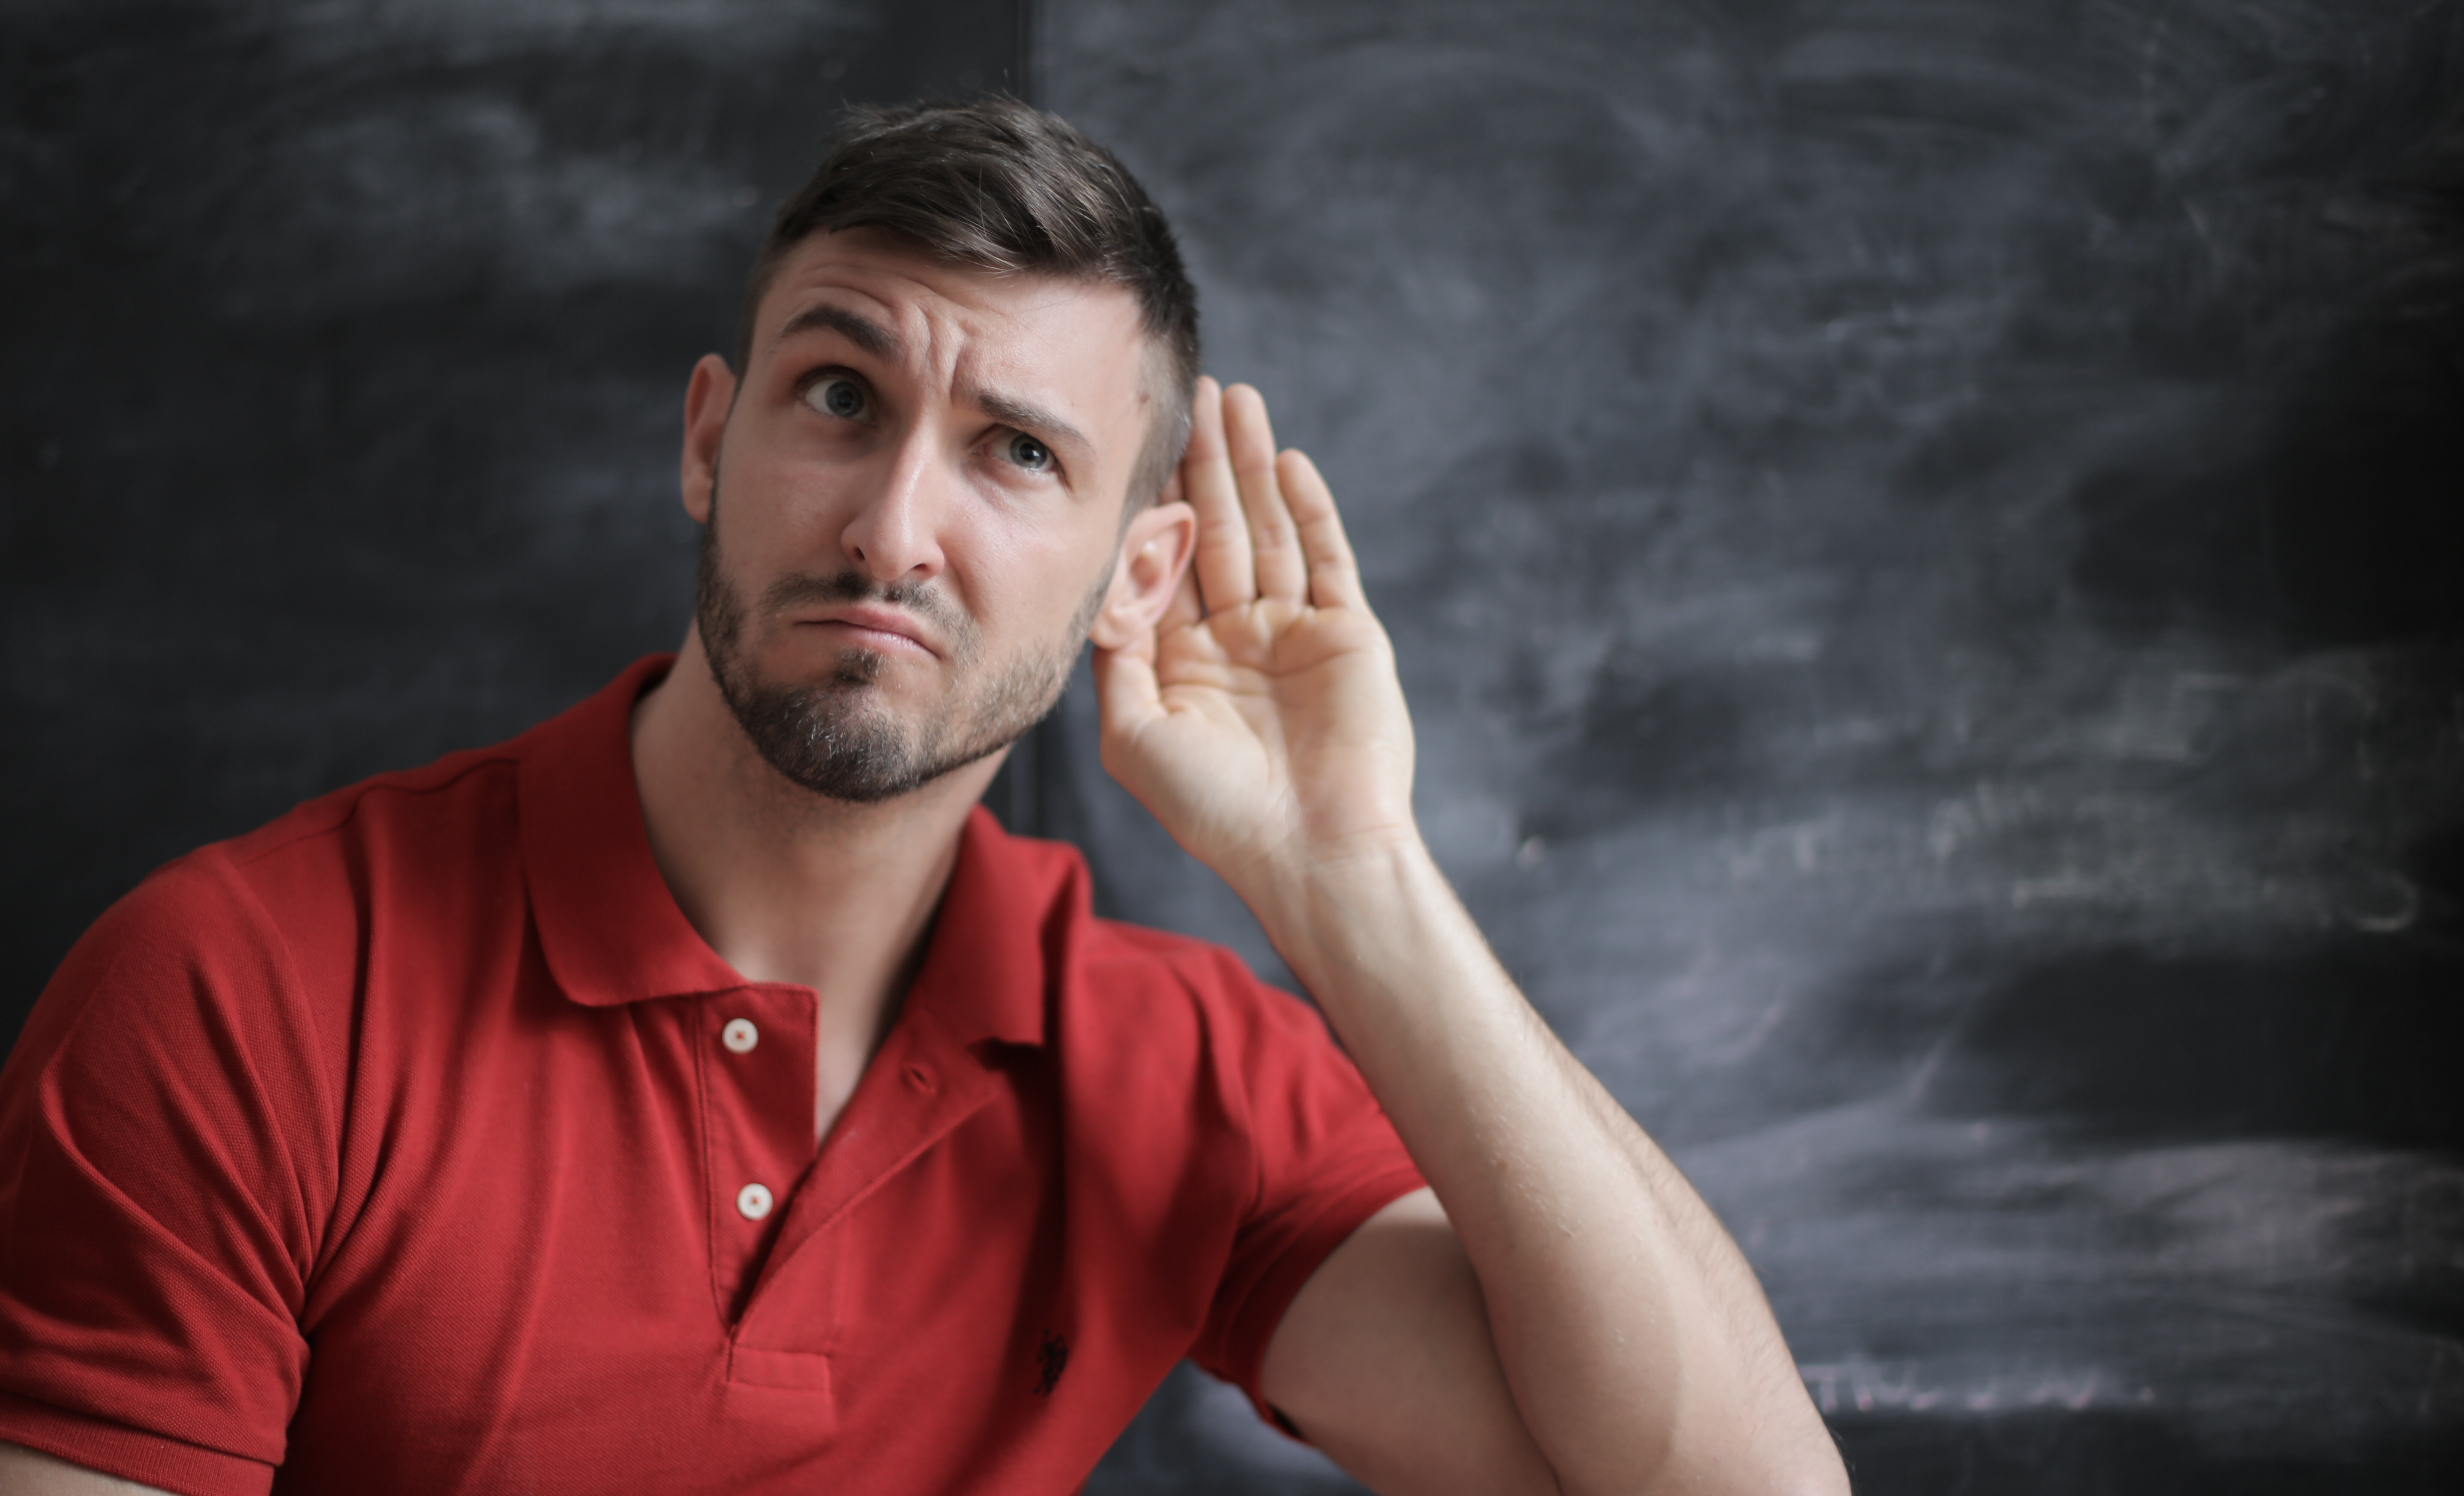 Man Listening during a case study interview